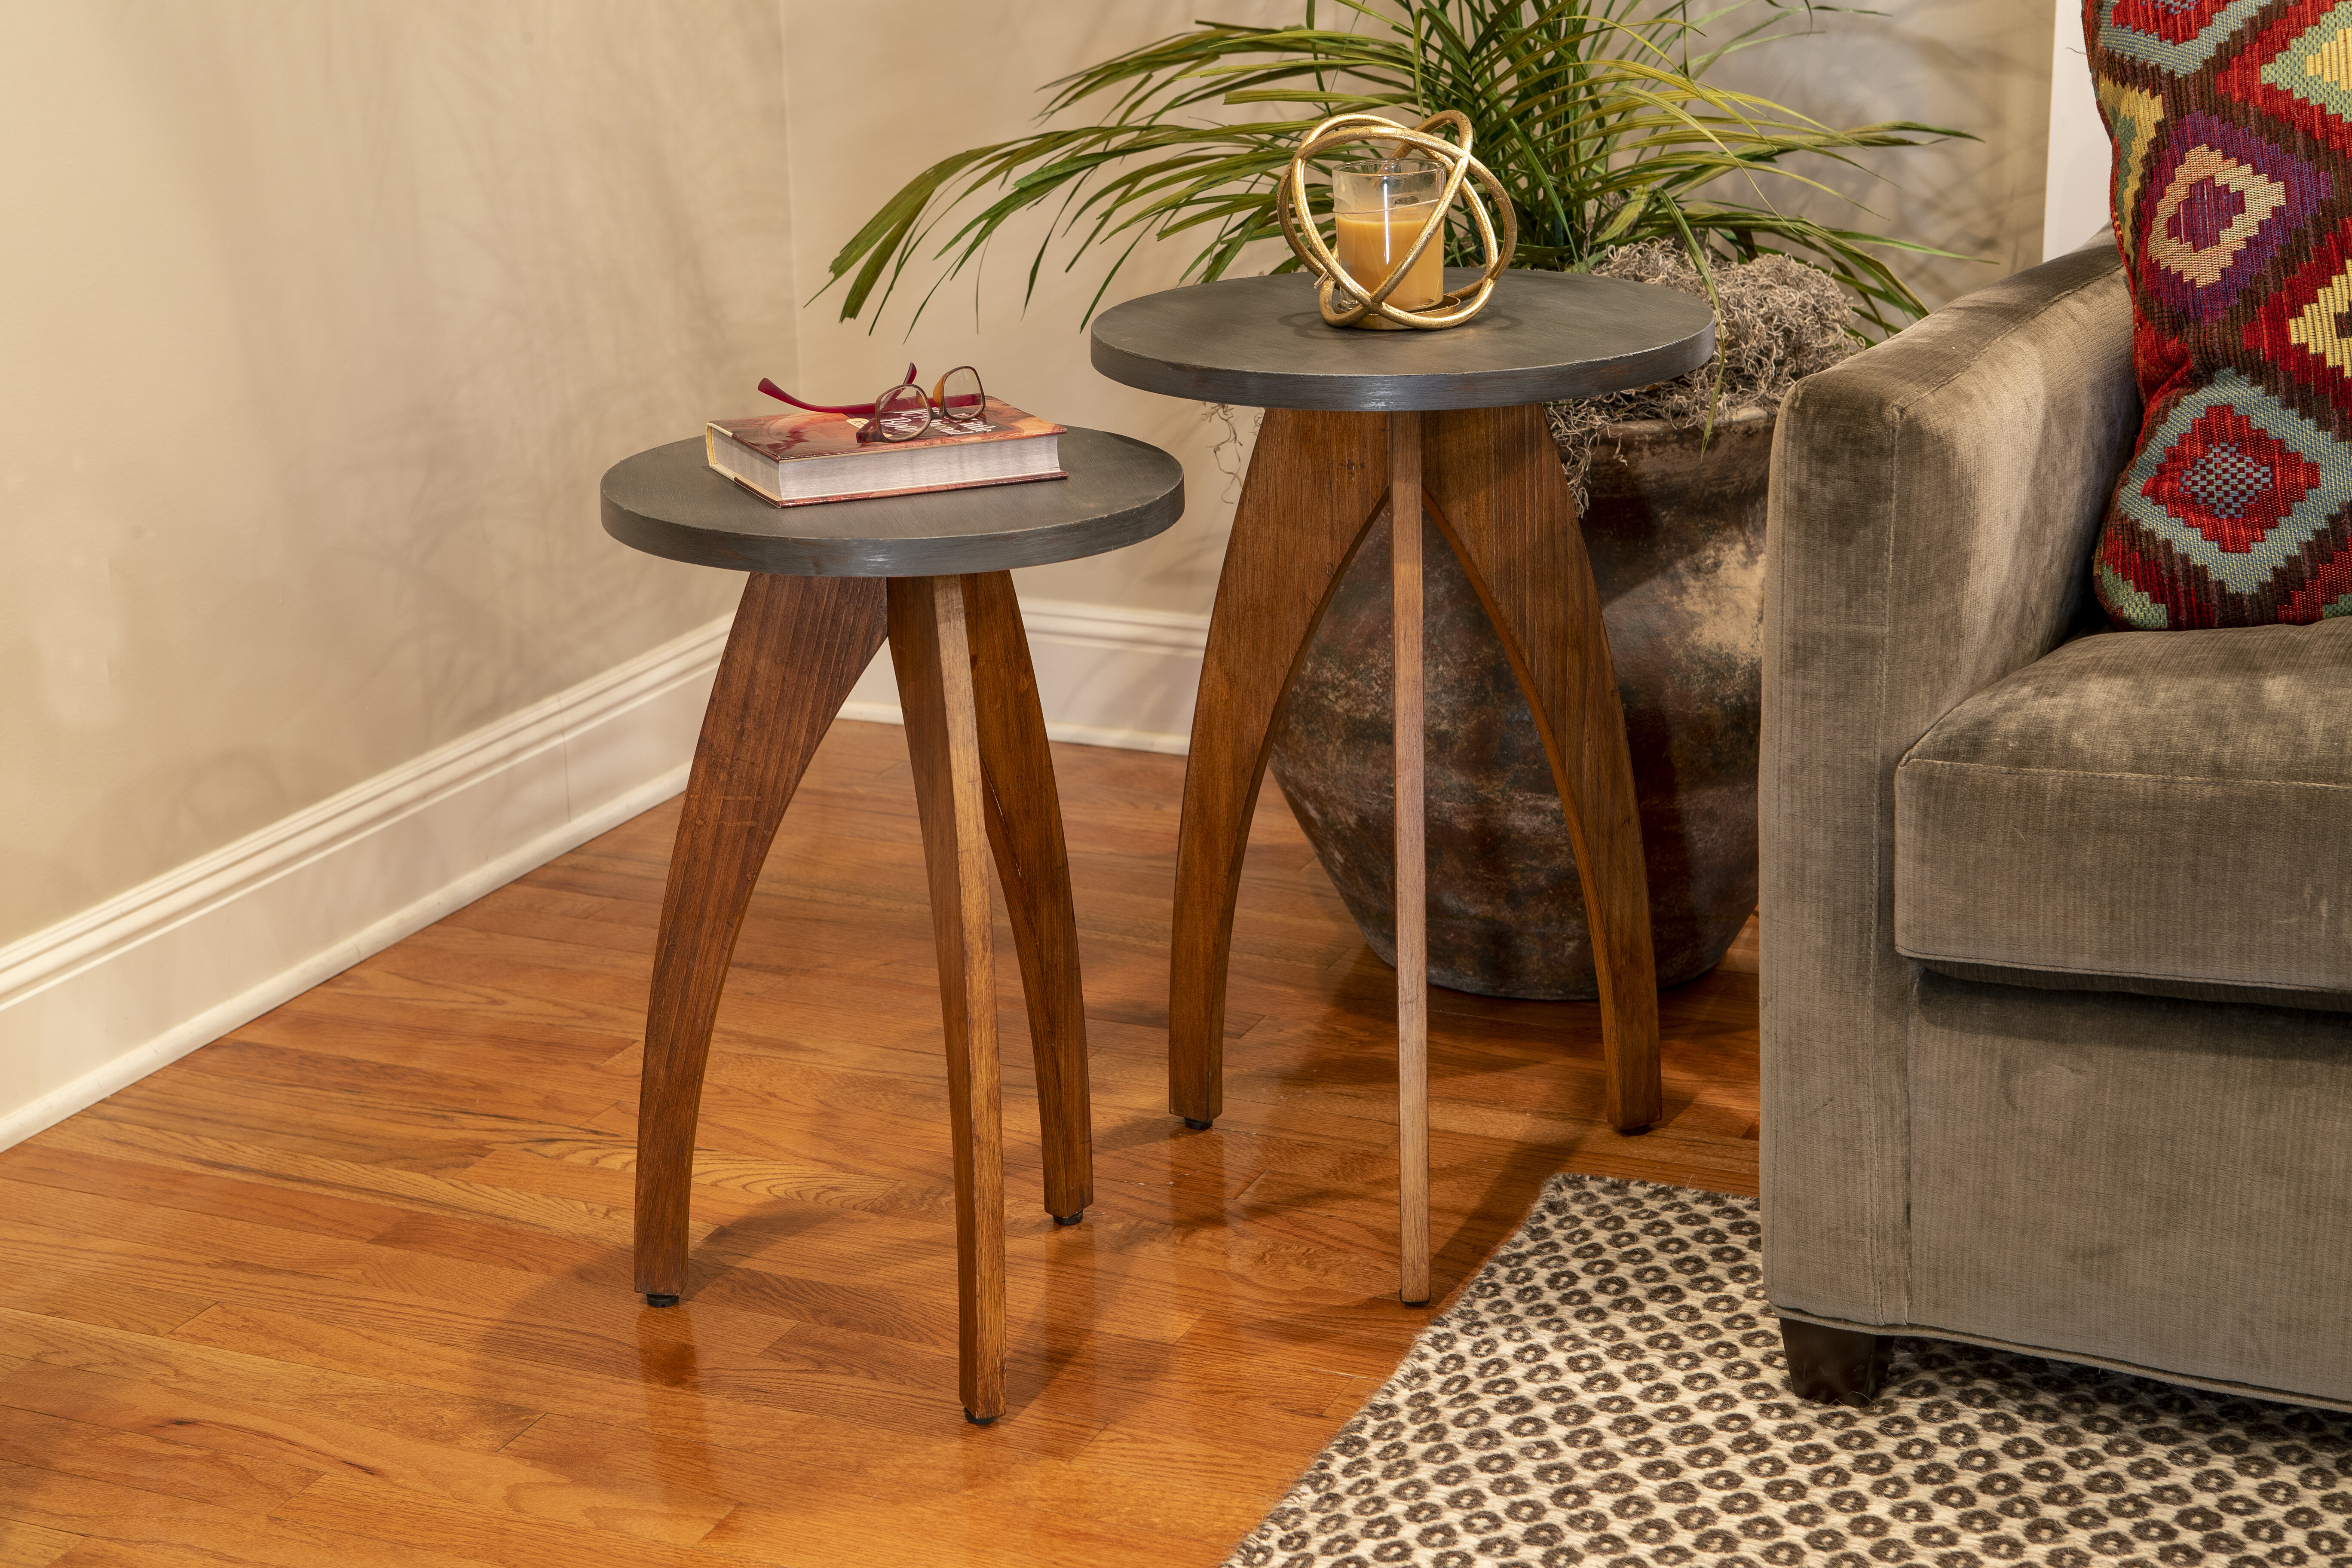 Brayden Studio Erna 3 Legs End Table Set Reviews Wayfair